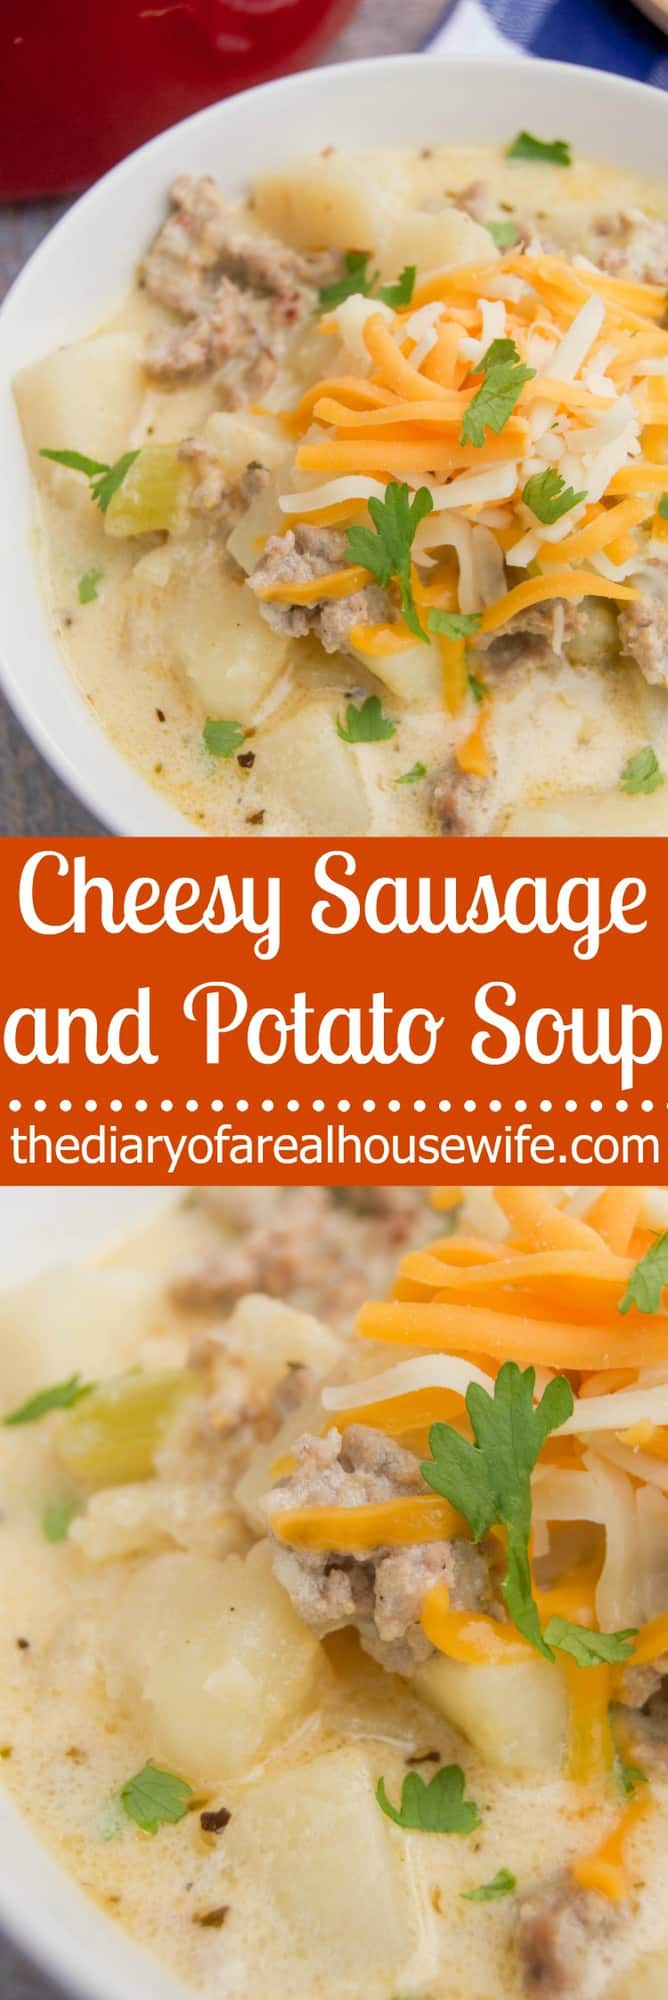 cheesy-sausage-and-potato-soup